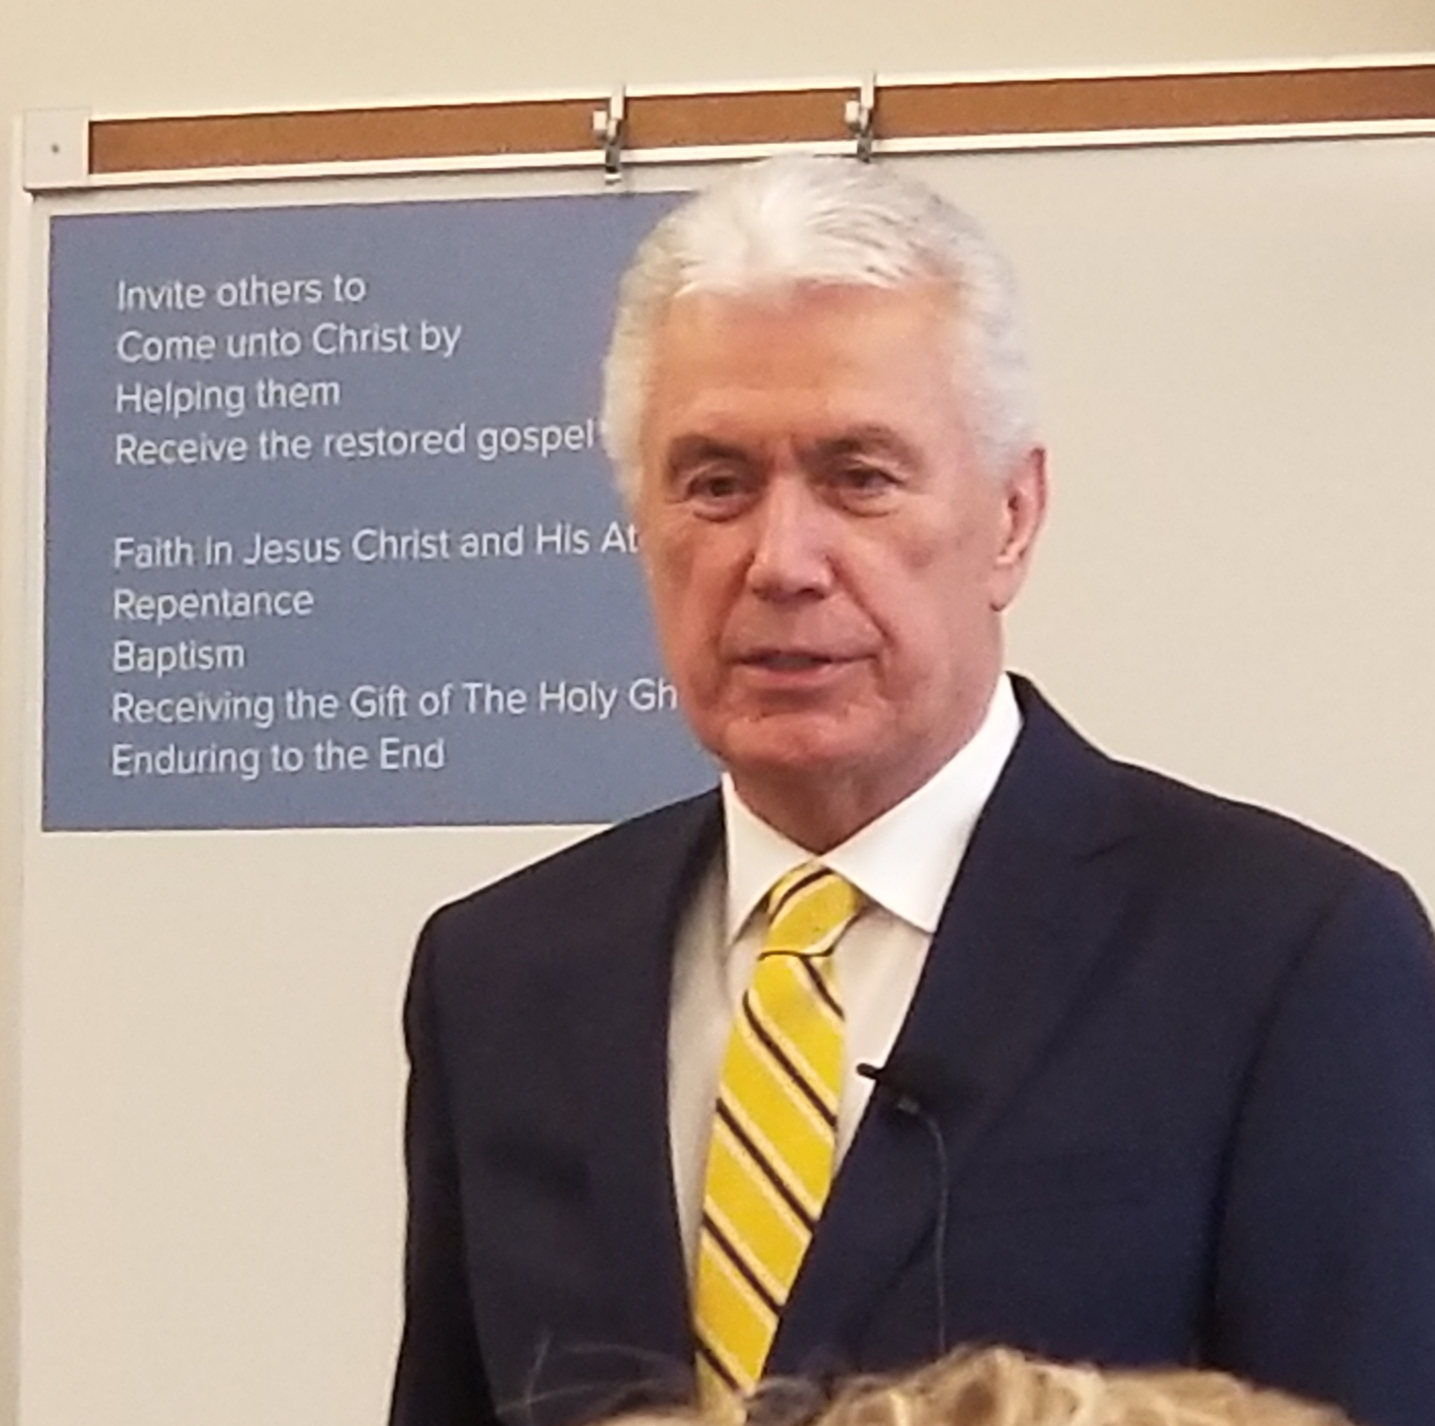 Elder Dieter F. Uchtdorf, a member of the Quorum of the Twelve Apostles and chairman of the Church's Missionary Executive Council, speaks at the 2019 MTC Leadership Seminar on Jan. 15 at the Provo Missionary Training Center.